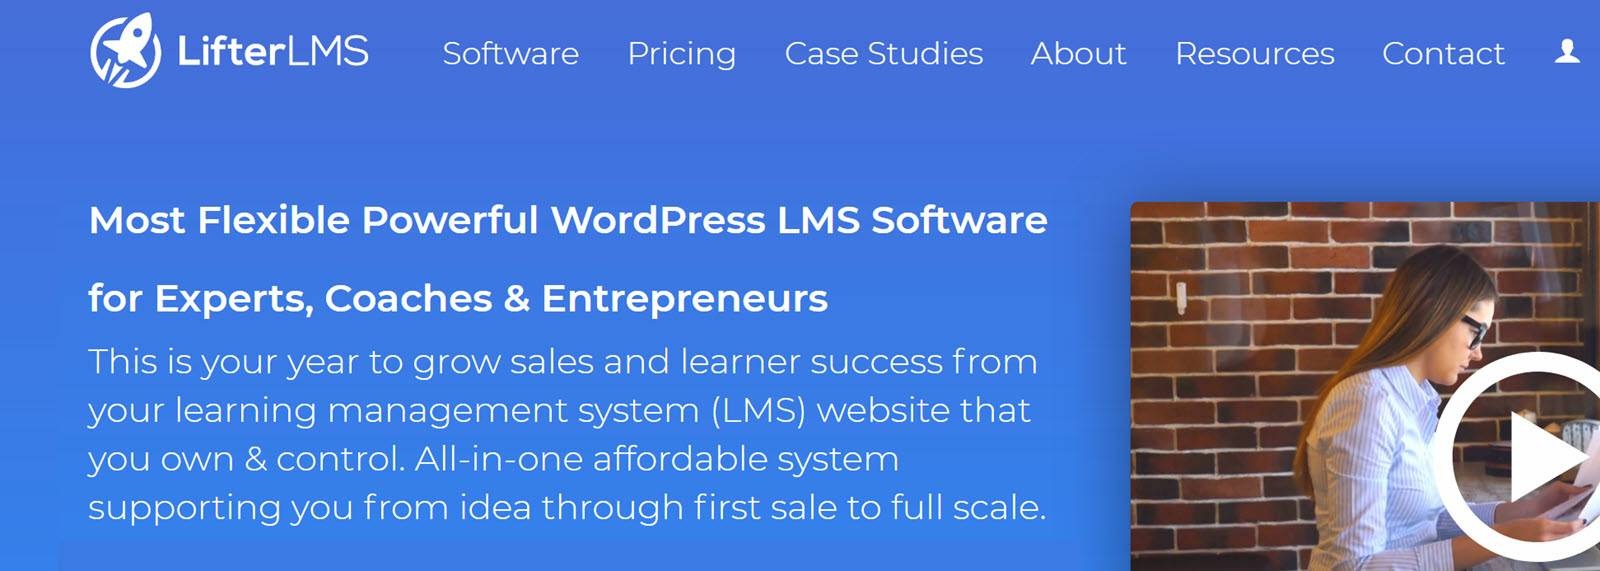 Best WordPress Plugins for Online Courses - LifterLMS